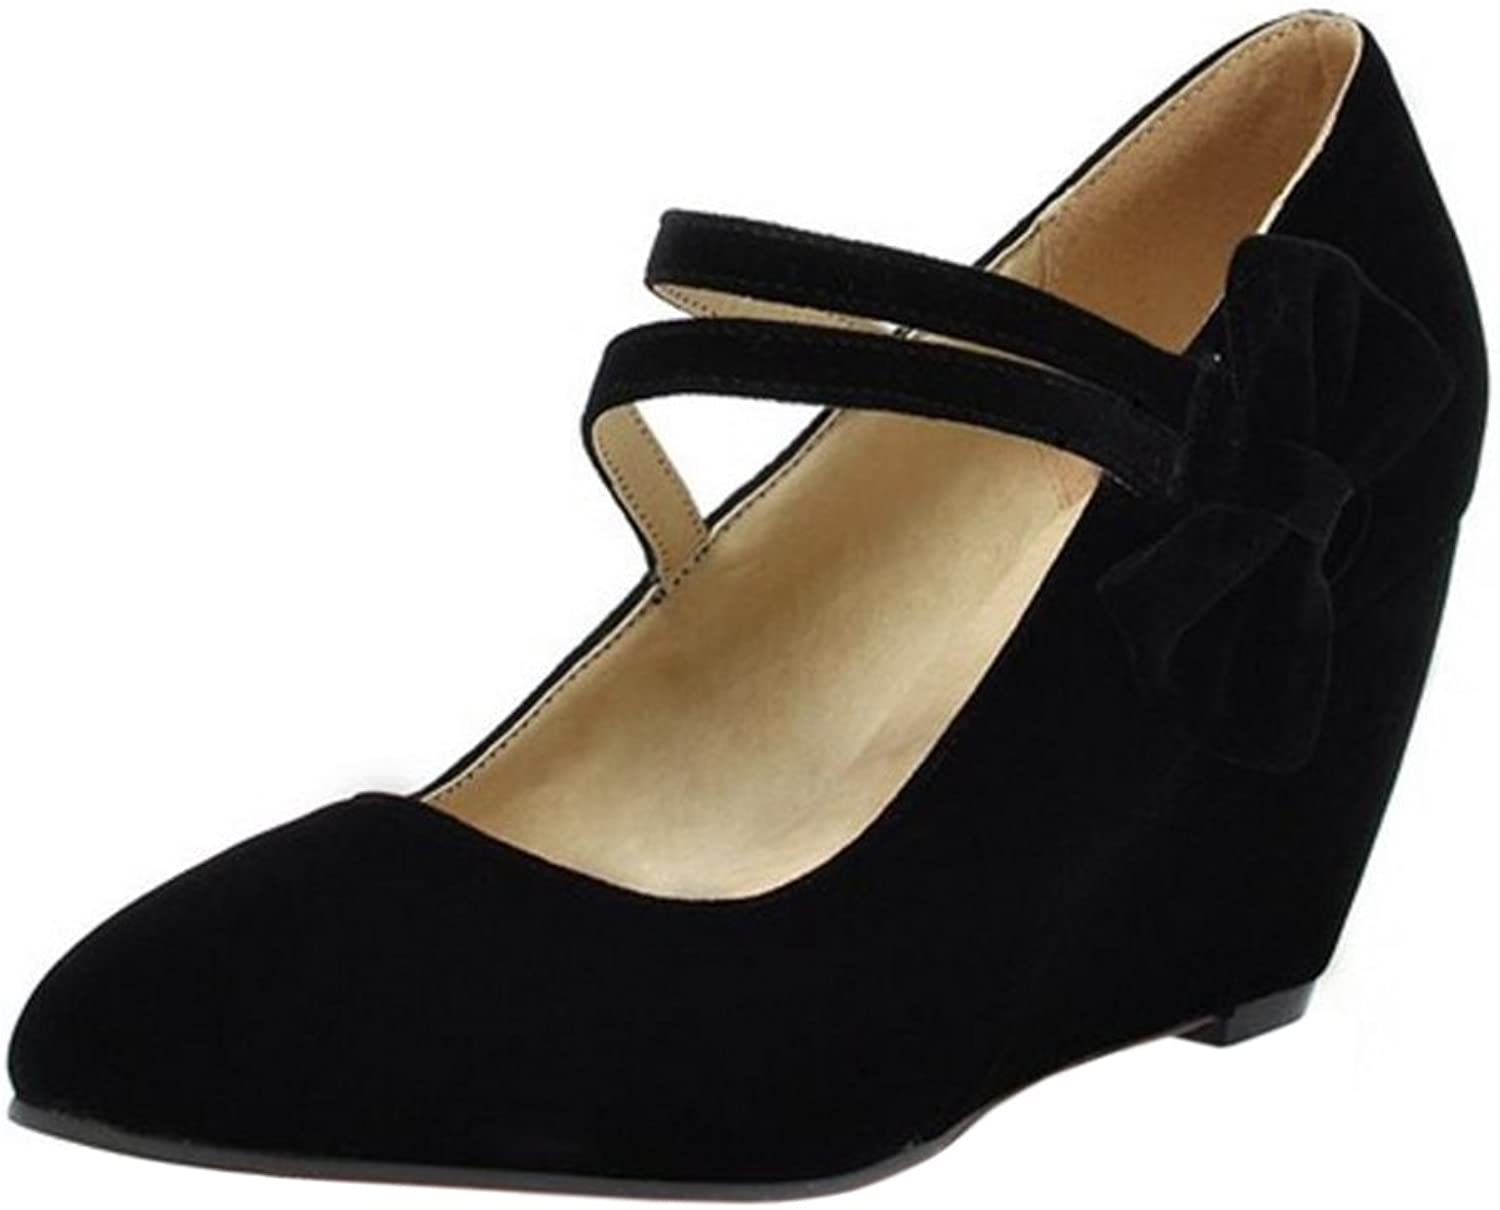 CarziCuzin Women Wedge Heel Pumps